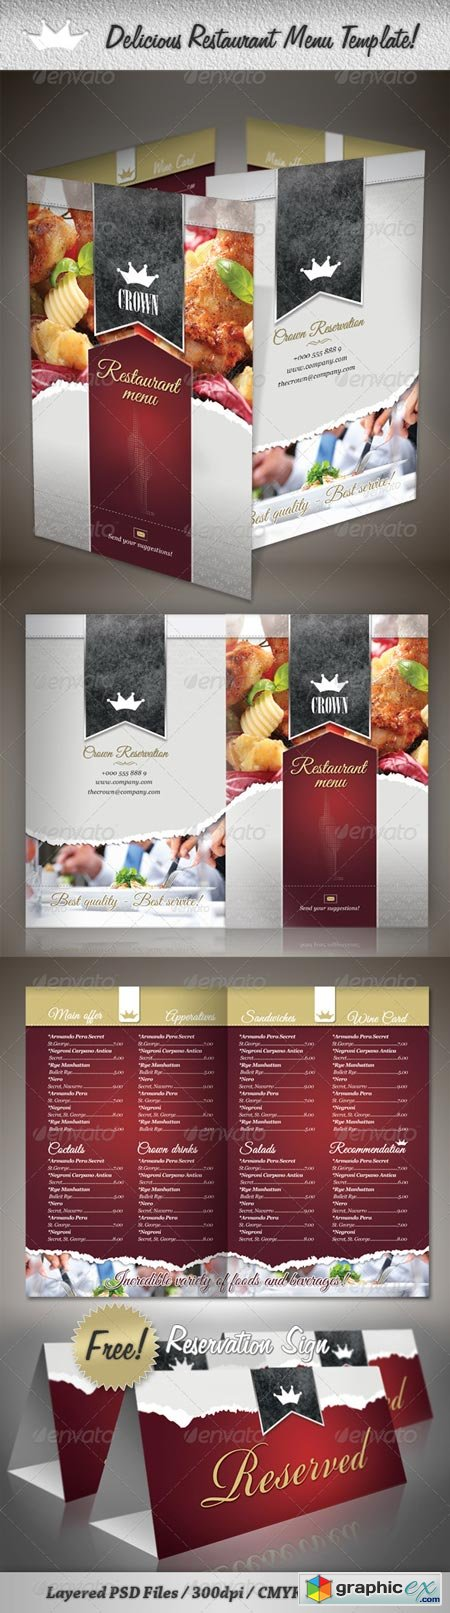 Delicious Restaurant Menu Template 2021633